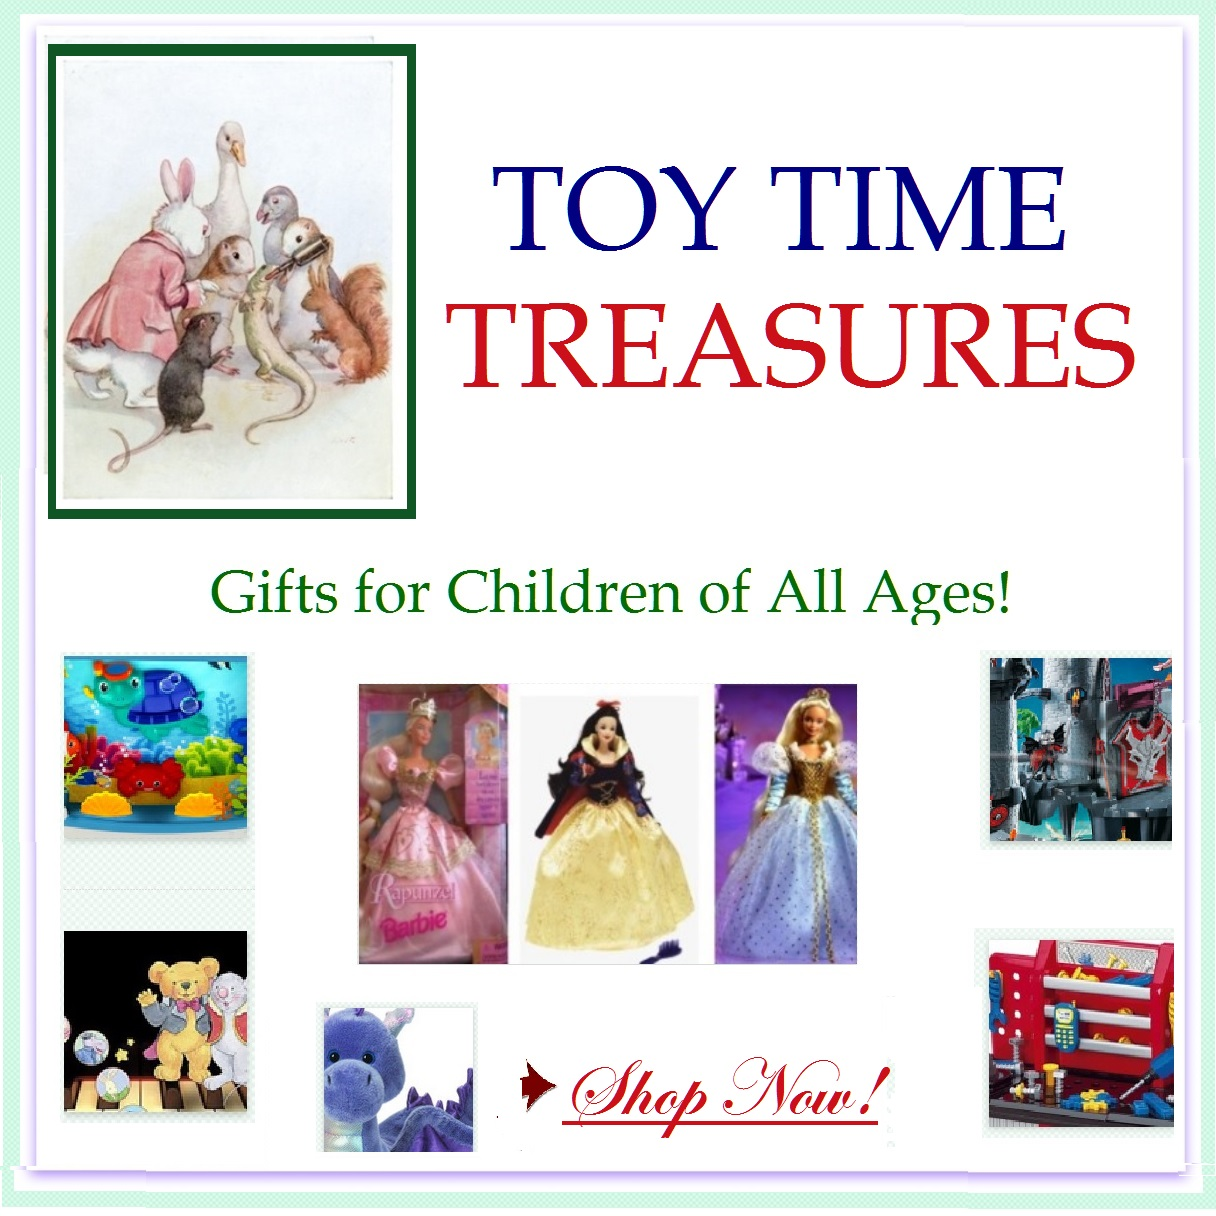 Toy Time Treasures features & recommends the best selection of toys available for our children today. Articles written by experienced mothers focused on safety